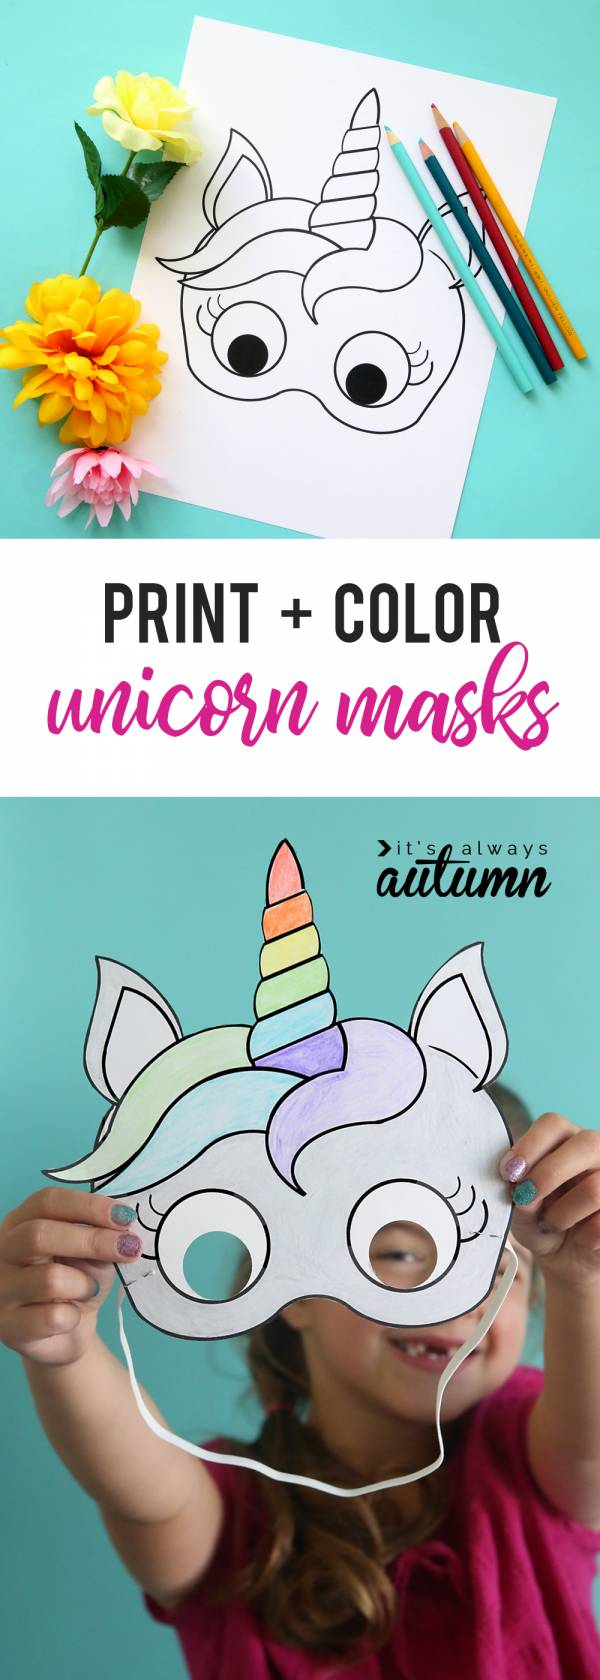 image relating to Free Printable Unicorn Mask named Do-it-yourself Unicorn Masks in direction of Print and Coloration S Scheduling